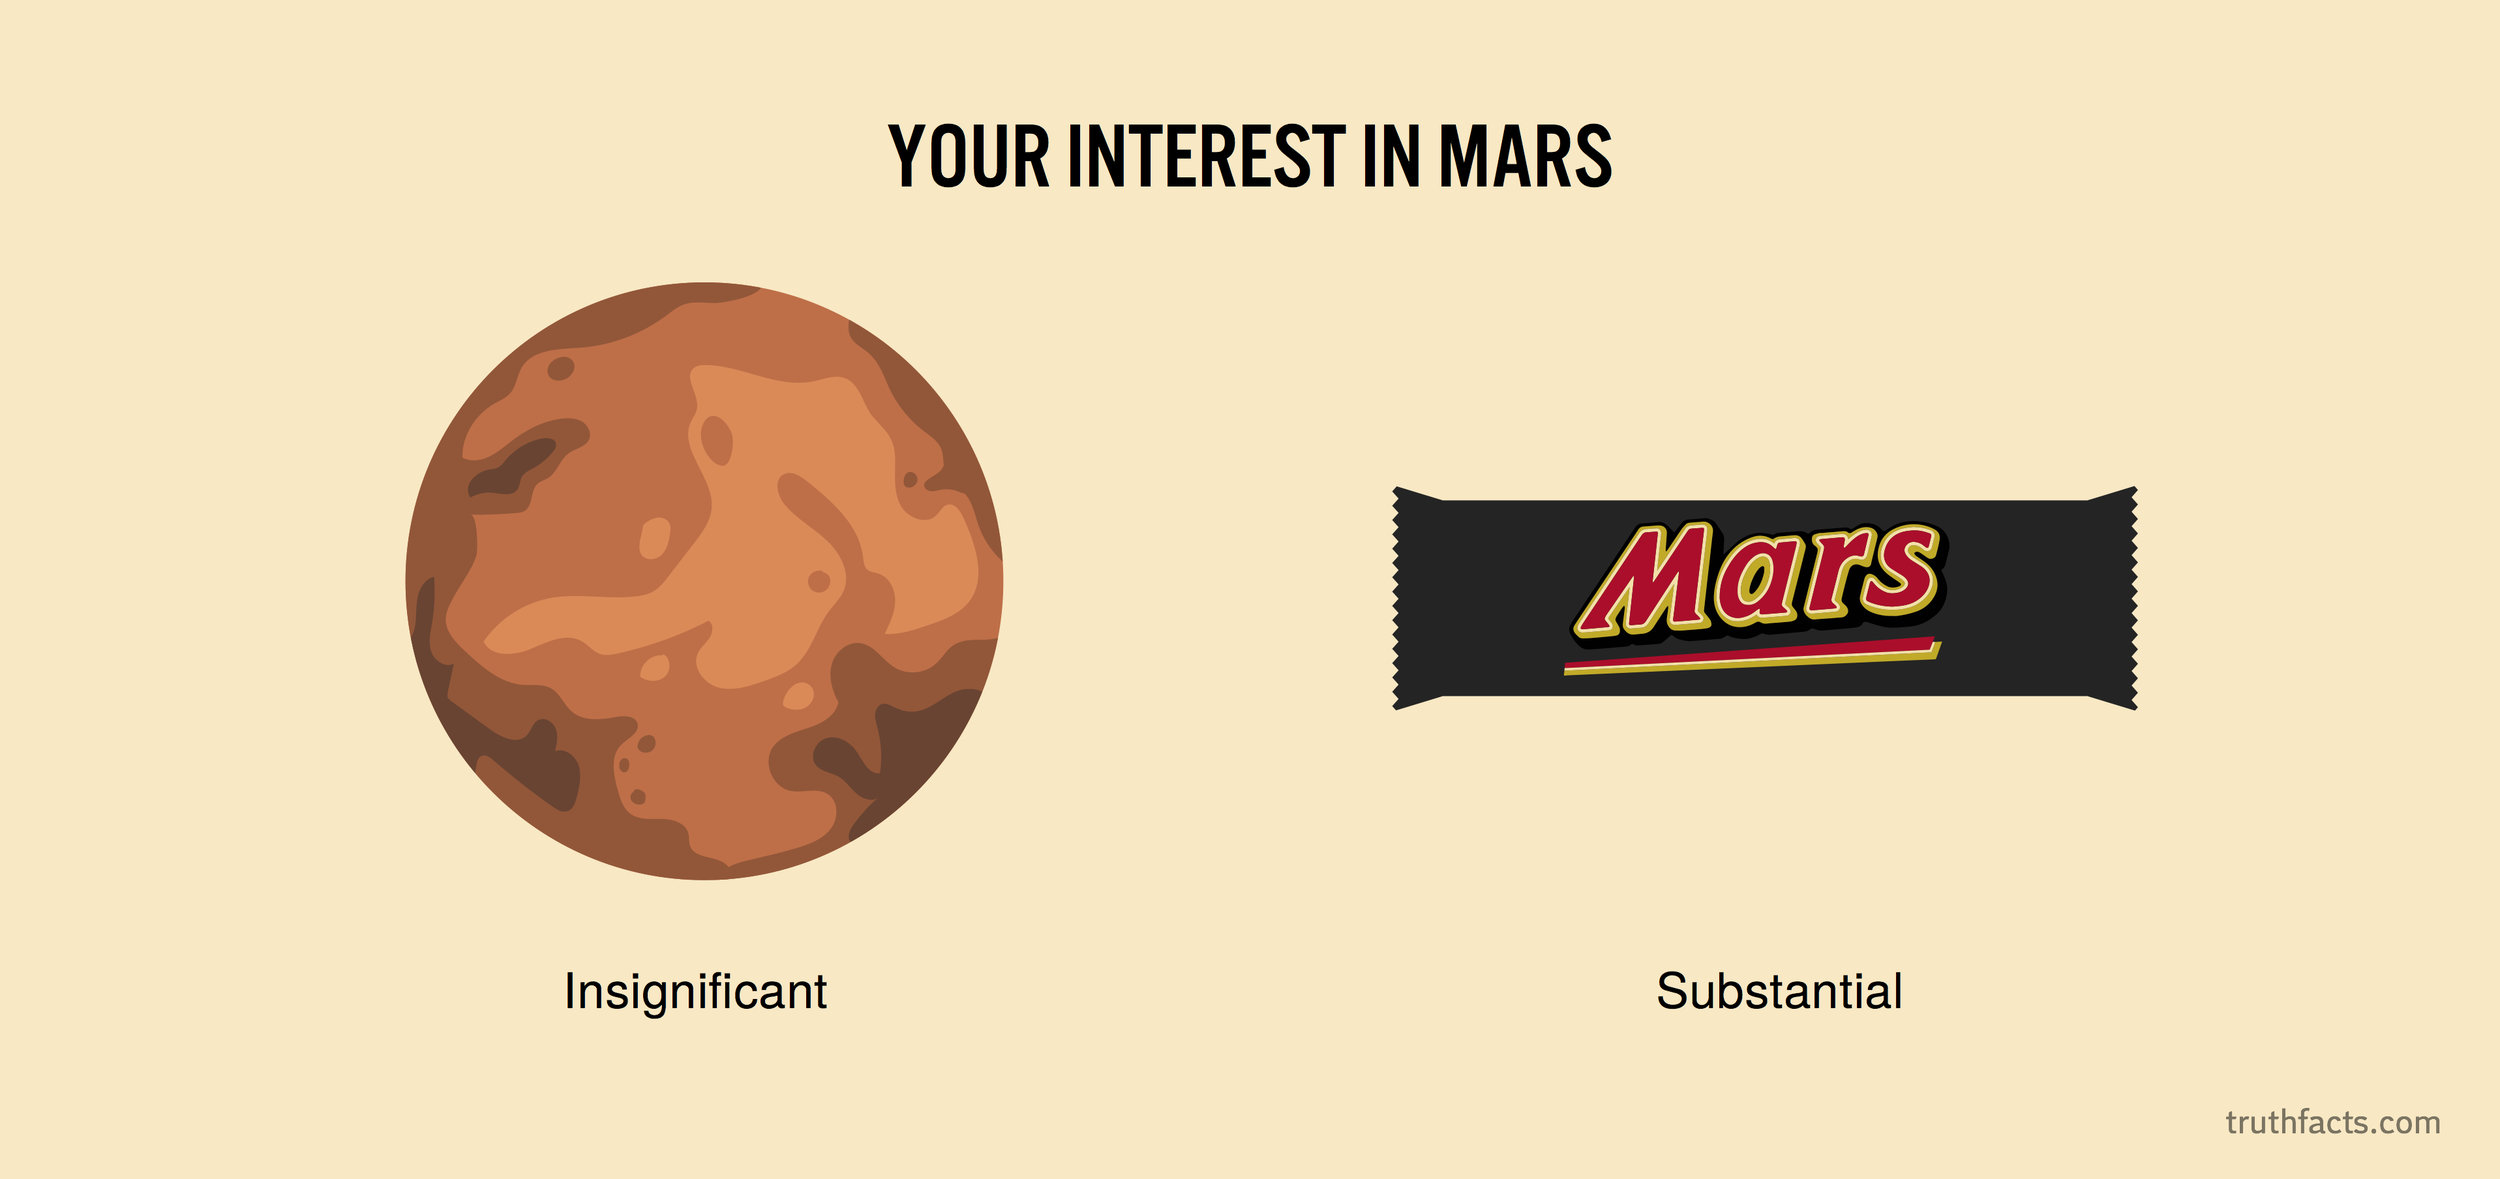 Your interest in mars